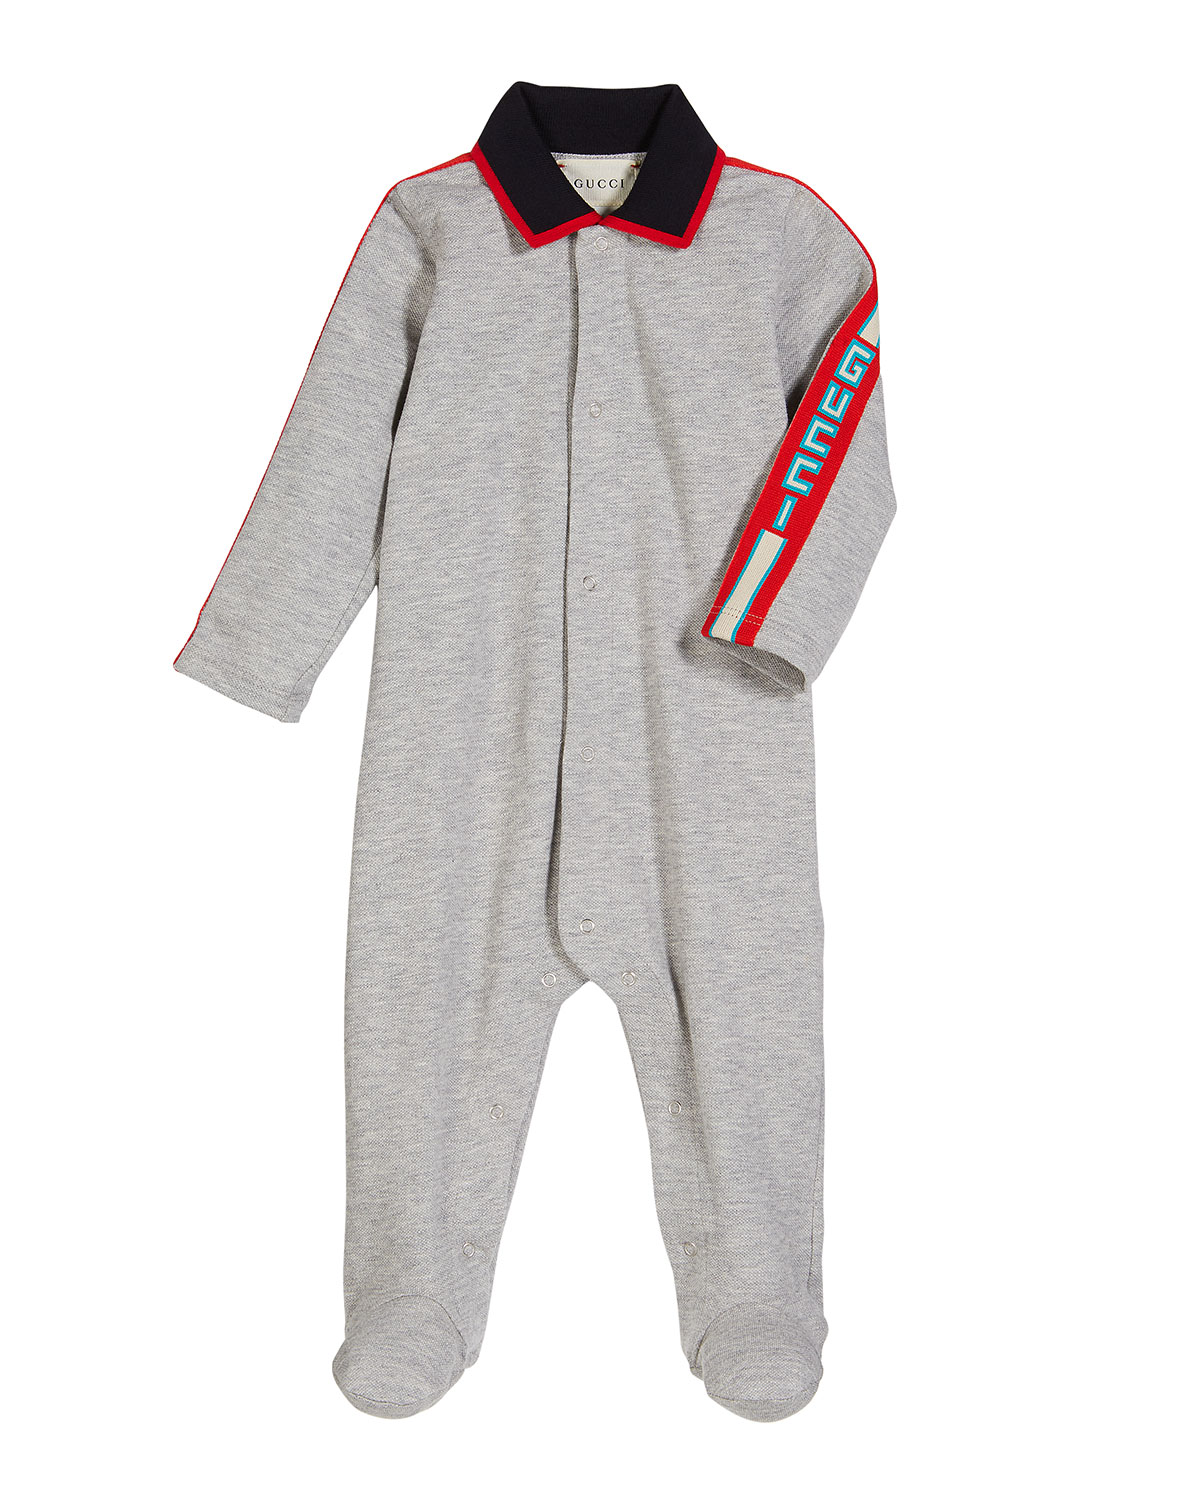 dbd24cc84c8 Gucci Collared Footie Pajamas w  Logo Taping